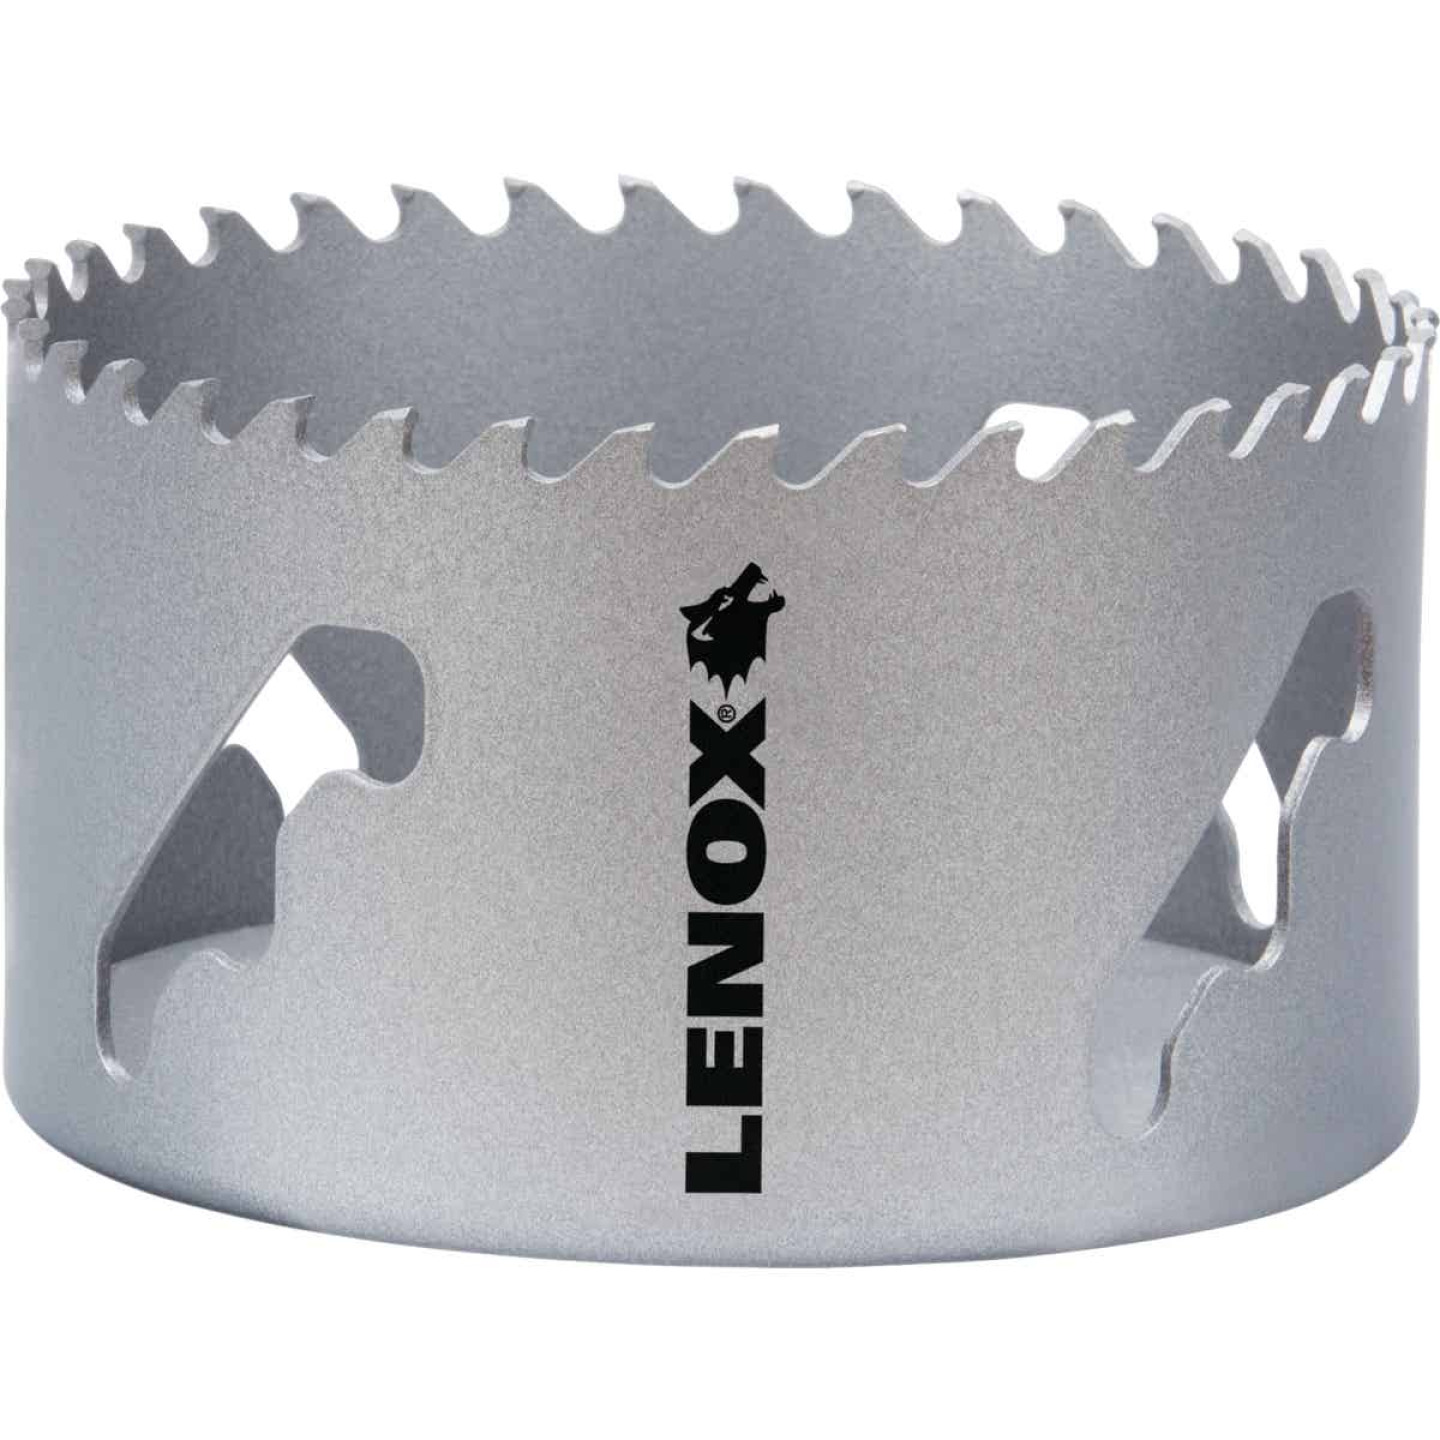 Lenox 4 In. Carbide-Tipped Hole Saw w/Speed Slot Image 1